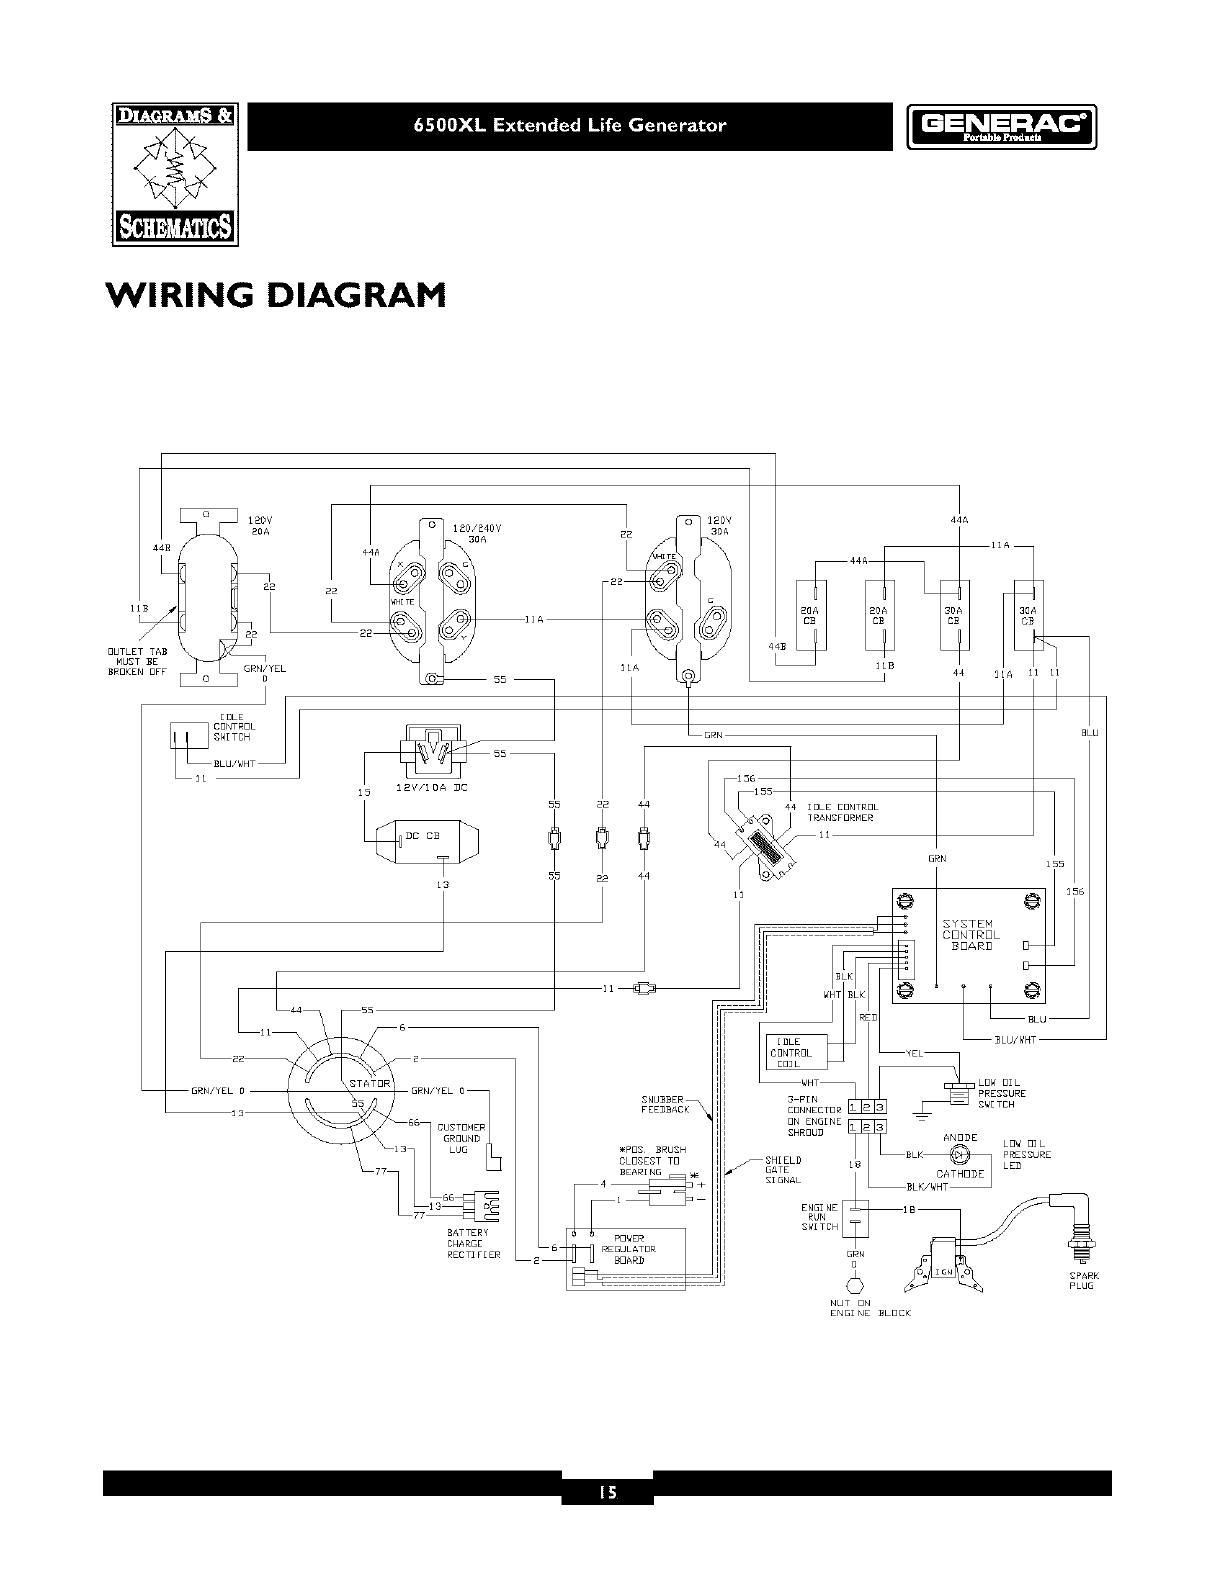 abacbfe4 09c9 46f3 b904 b7a0ca98baaa bgf page 15 of generac portable generator 6500xl user guide abac air compressor wiring diagram at mr168.co